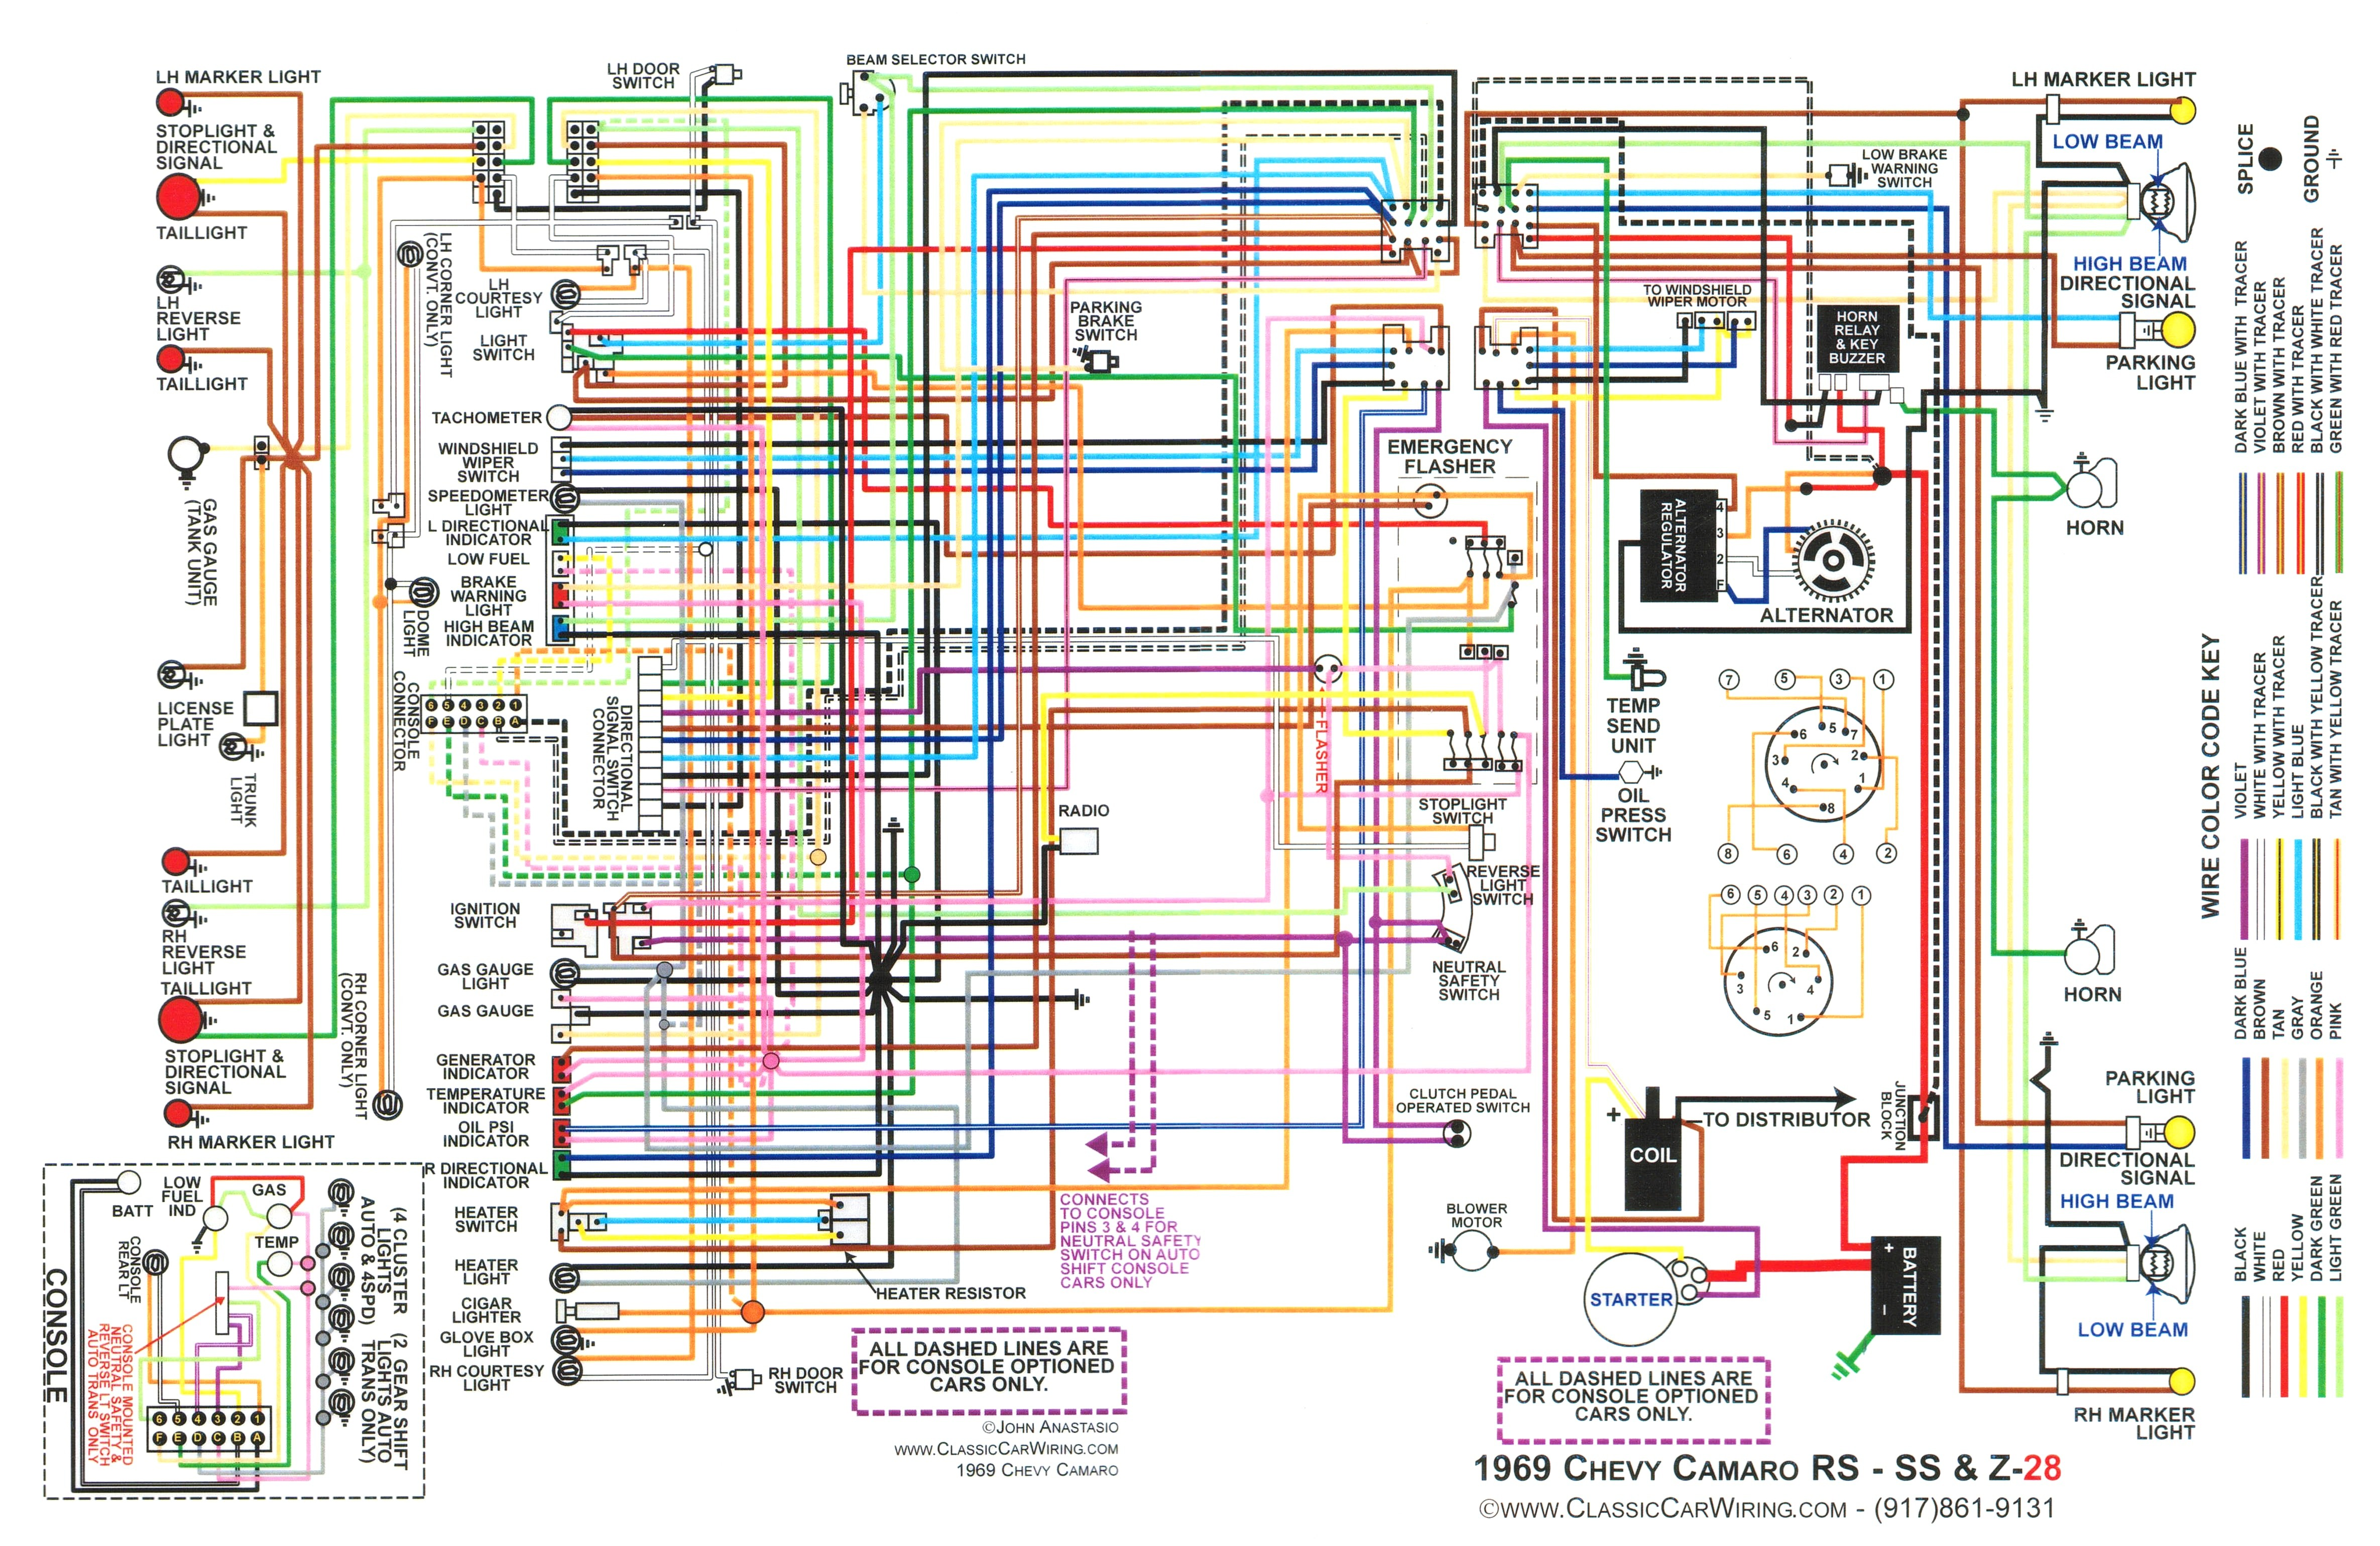 1968 Camaro Wiring Harness Diagram